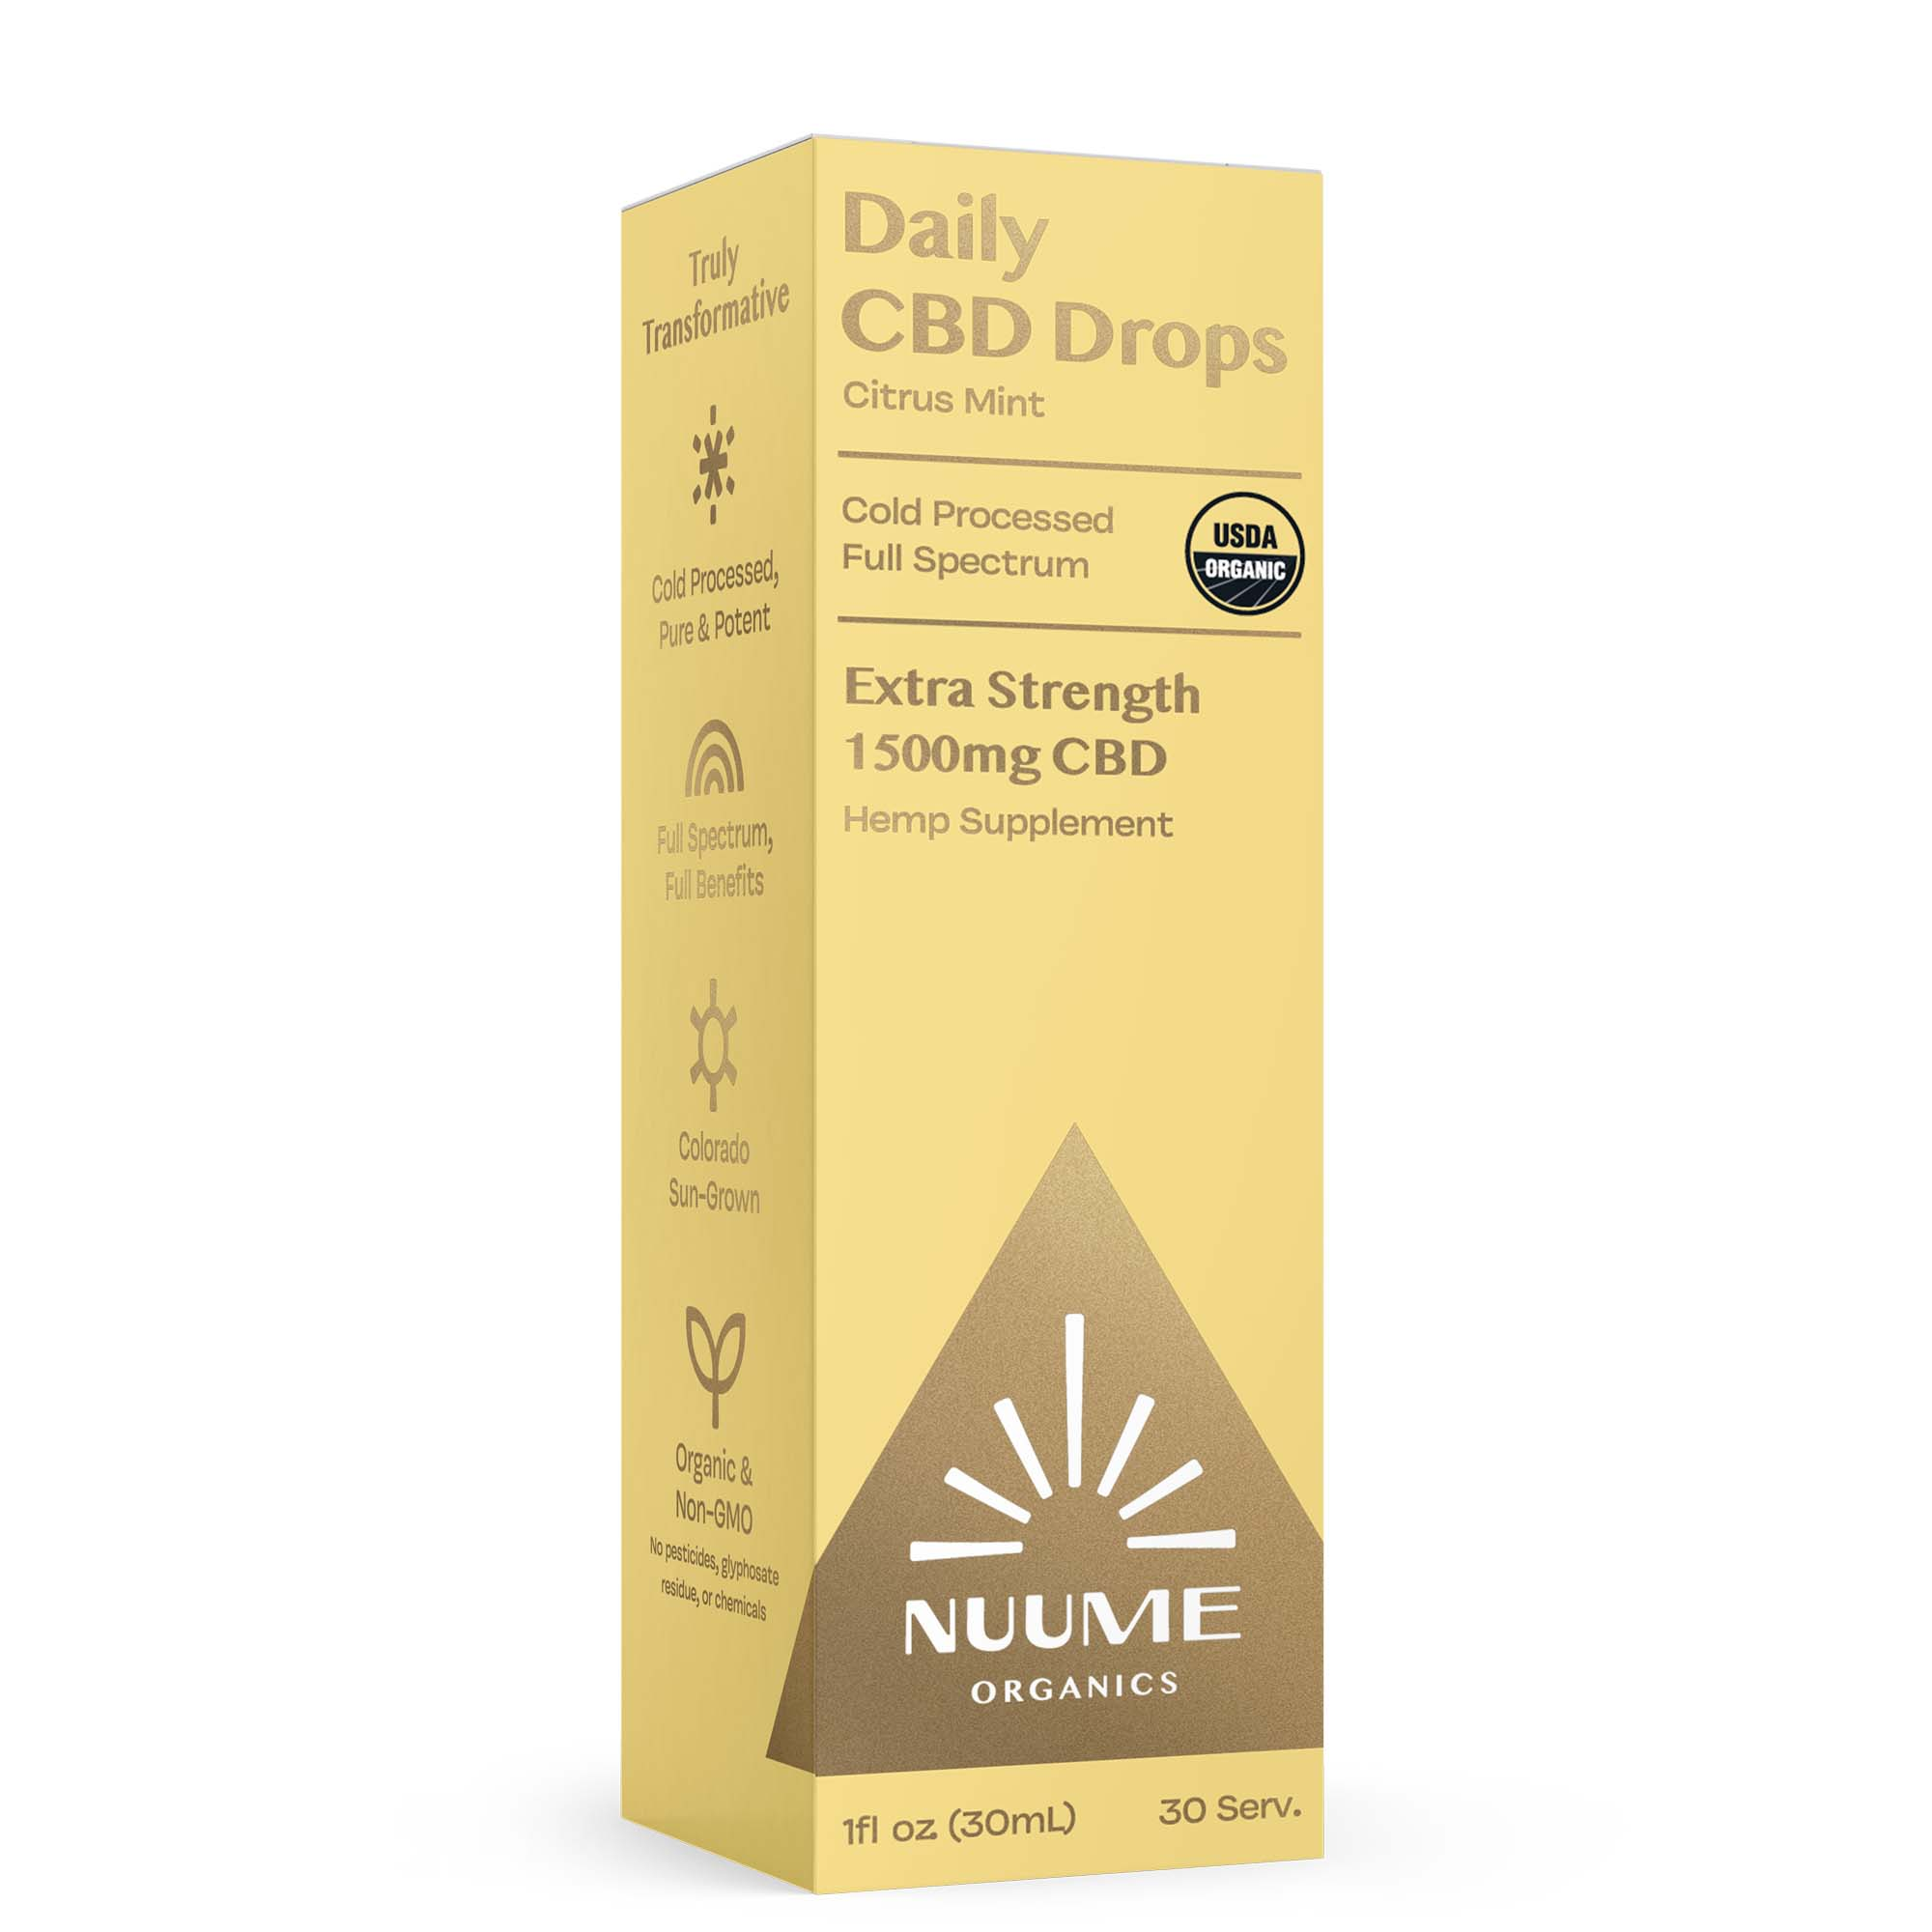 High Quality CBD just got more affordable